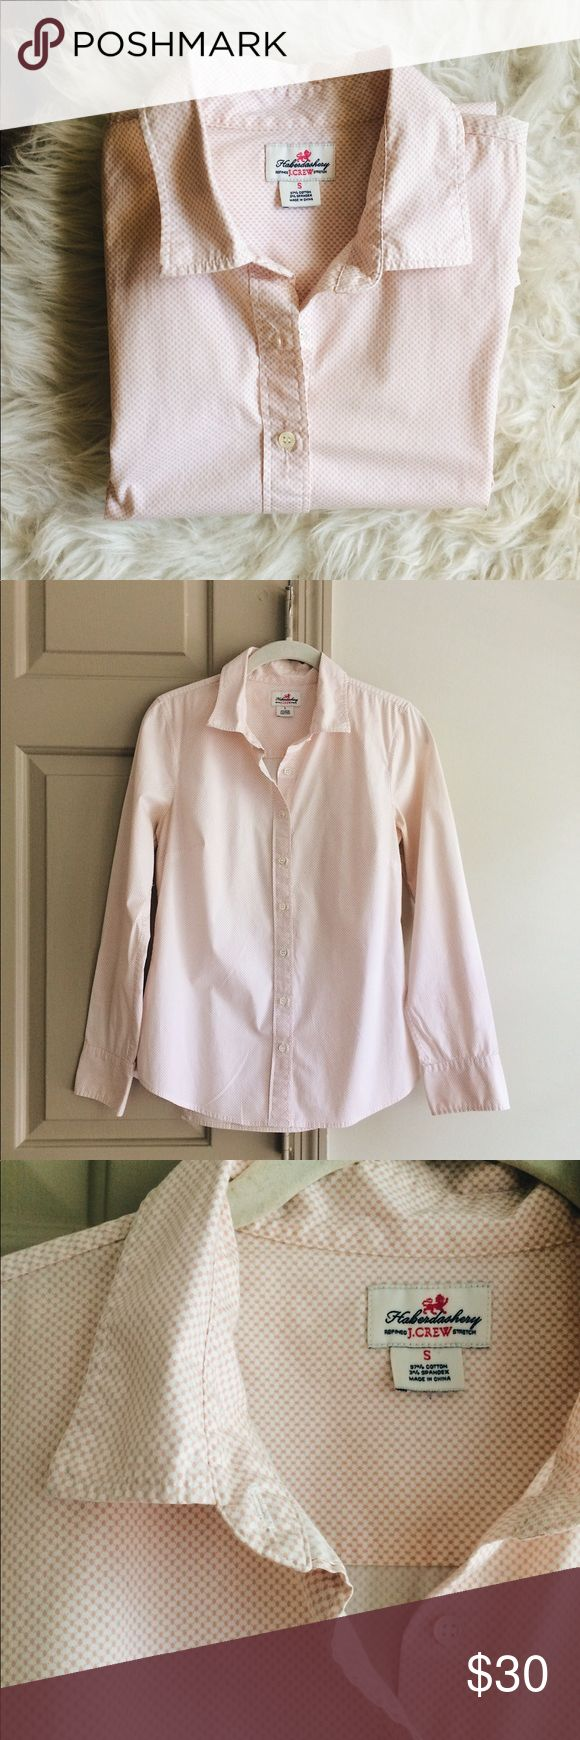 J. Crew Blush Pink Haberdashery Oxford Shirt Collared, button up. Sleeves button and roll up well. Well-fitted (flattering for women) oxford. Slight wear in underarms, but not noticeable when worn. From the Haberdashery by J.Crew. J. Crew Tops Button Down Shirts